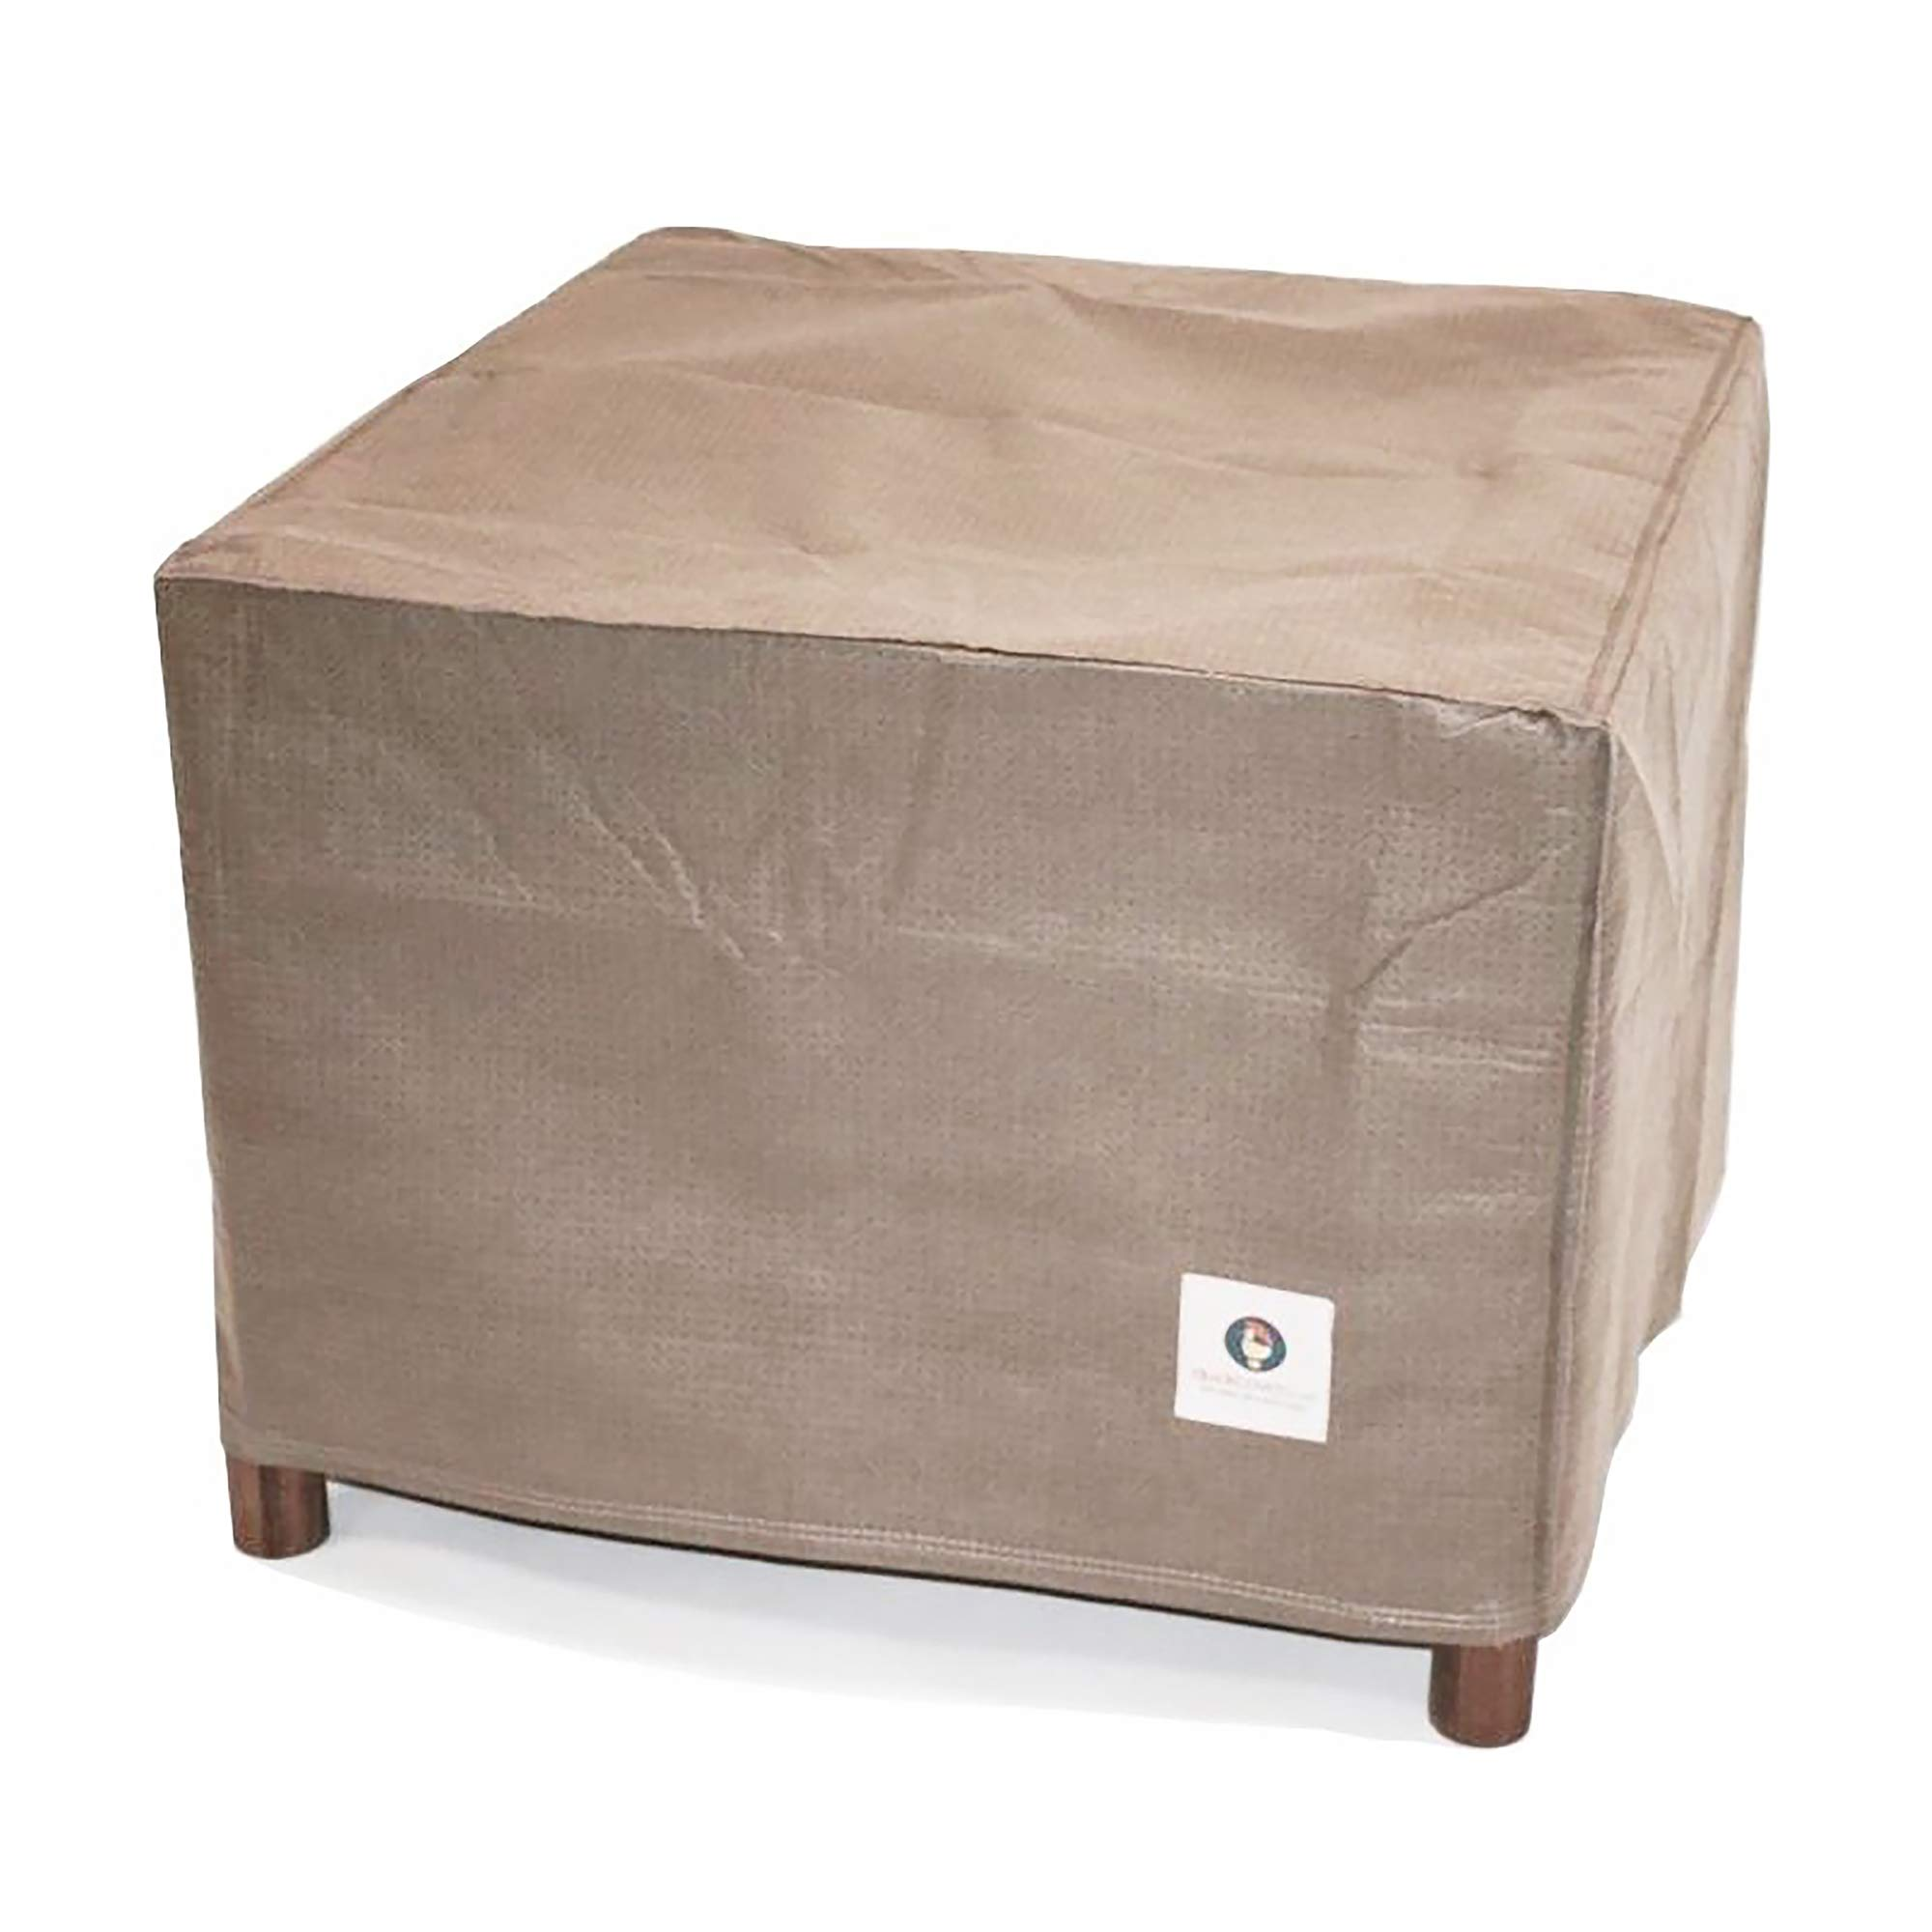 Duck Covers Elite Square Patio Ottoman/Side Table Cover, Fits Outdoor Square Ottoman/Side Tables 32 in Long